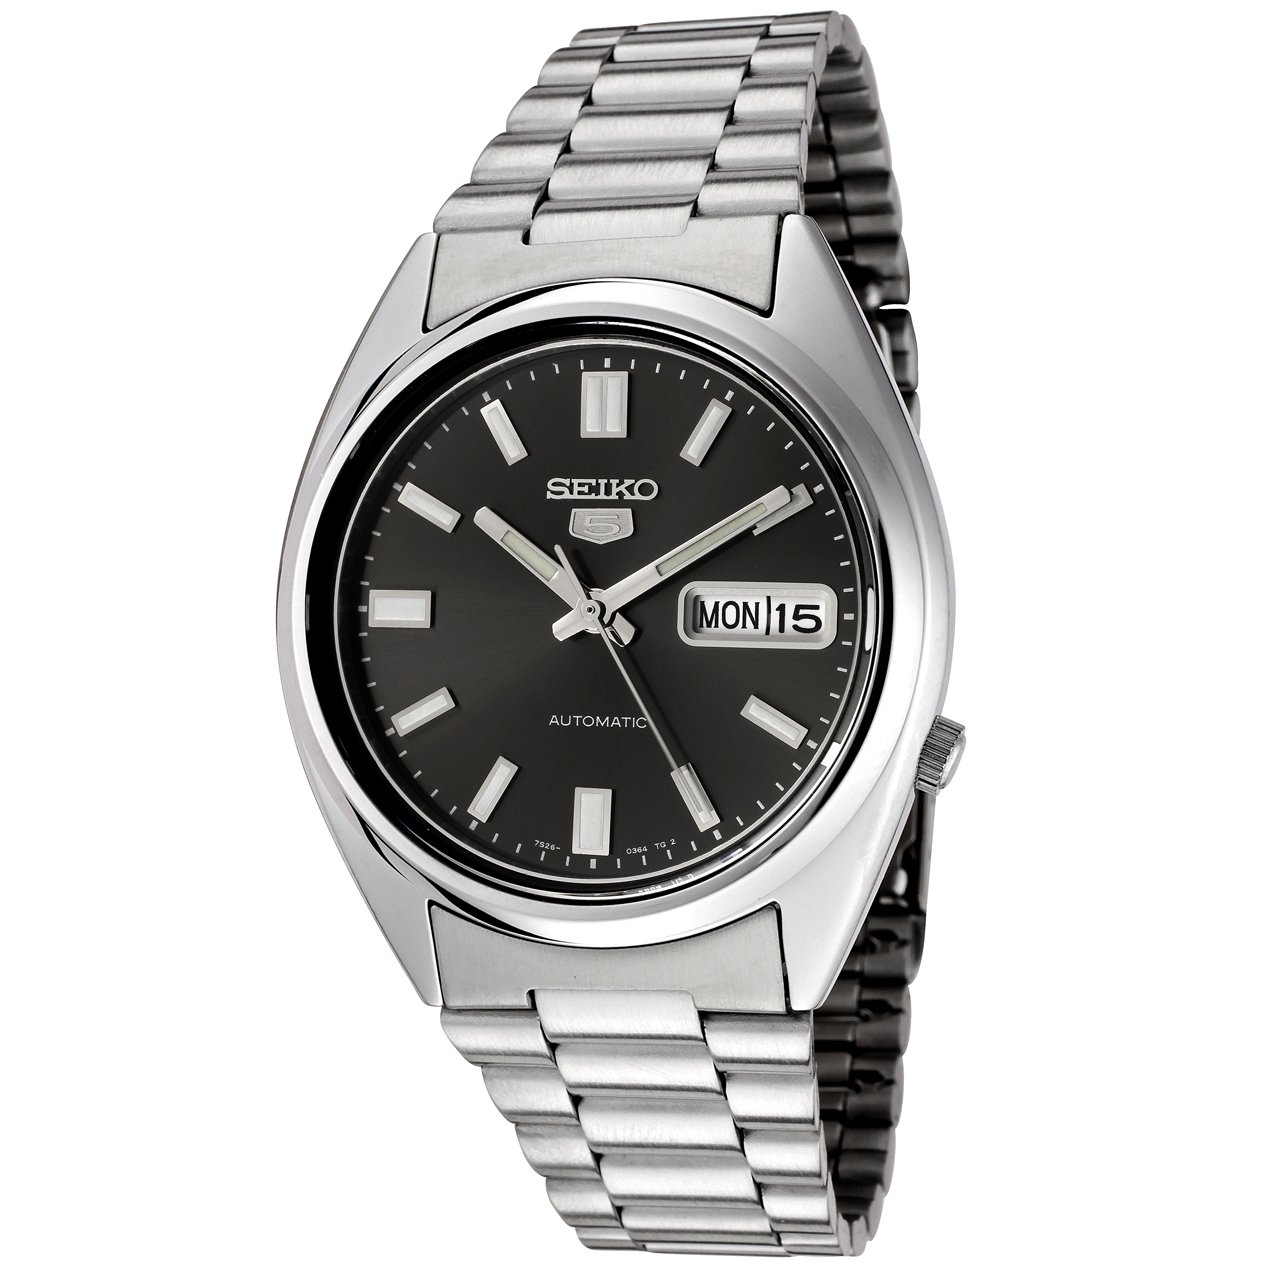 Seiko Unisex Analogue Quartz Watch with Stainless Steel Bracelet – SNXS79K